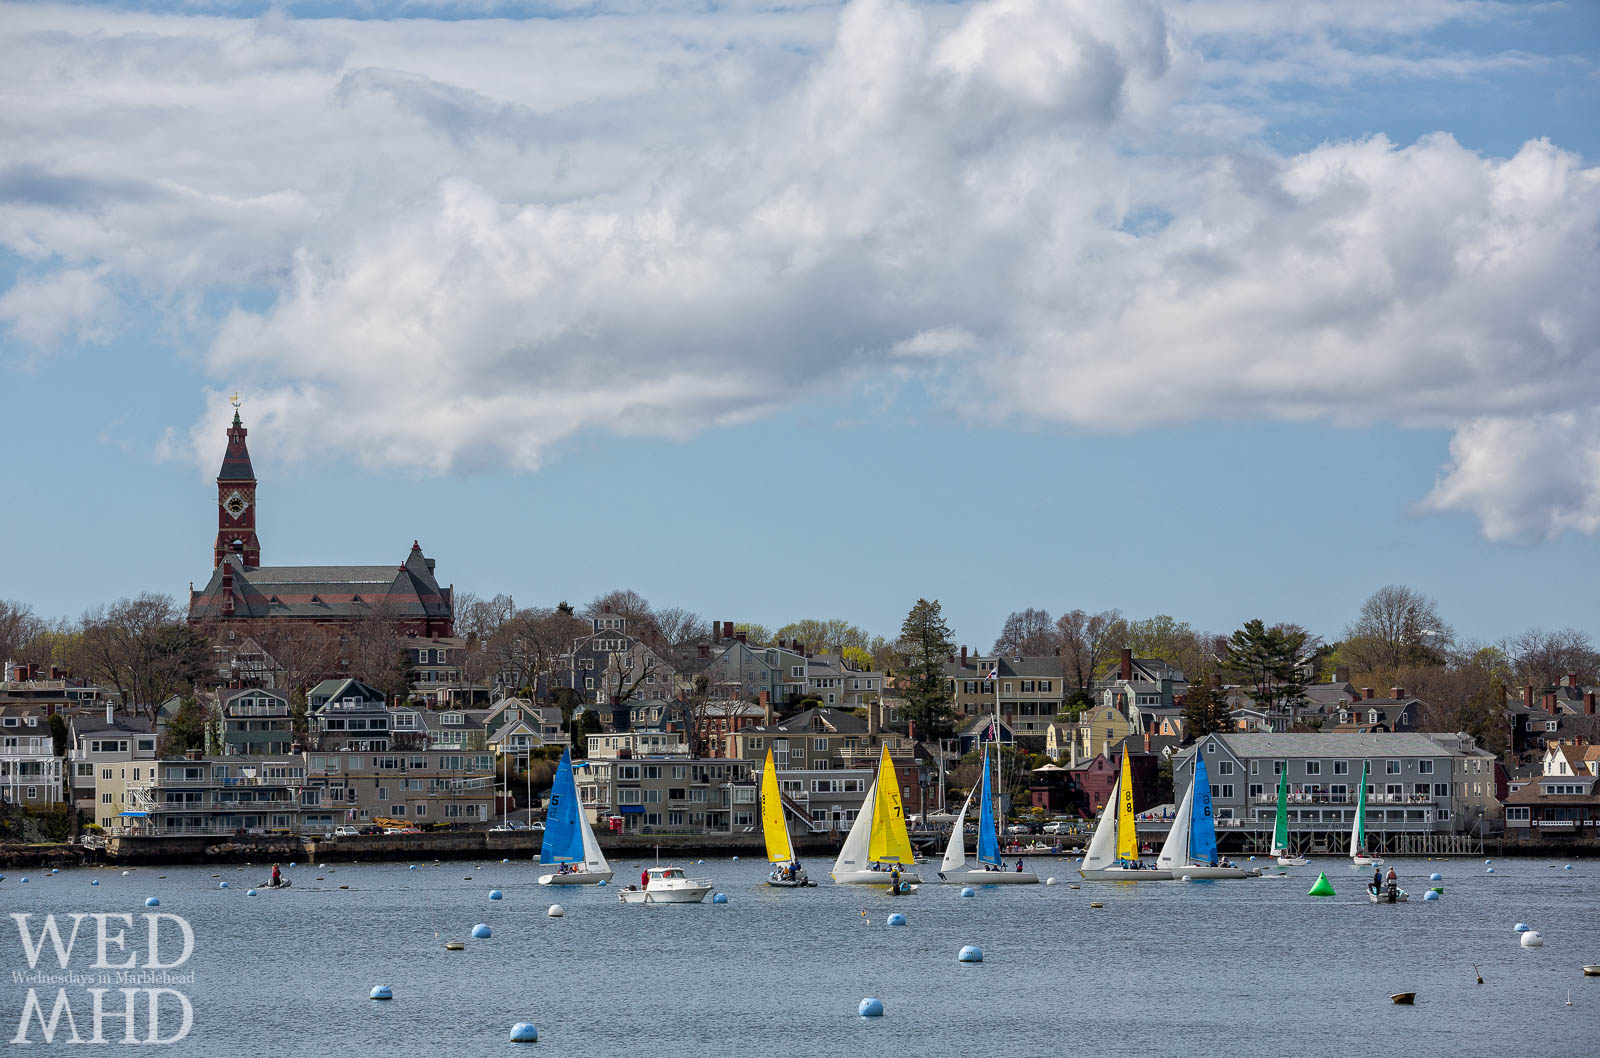 Light breeze, picturesque clouds and colorful boats make for a perfect day for racing during the Jackson Cup